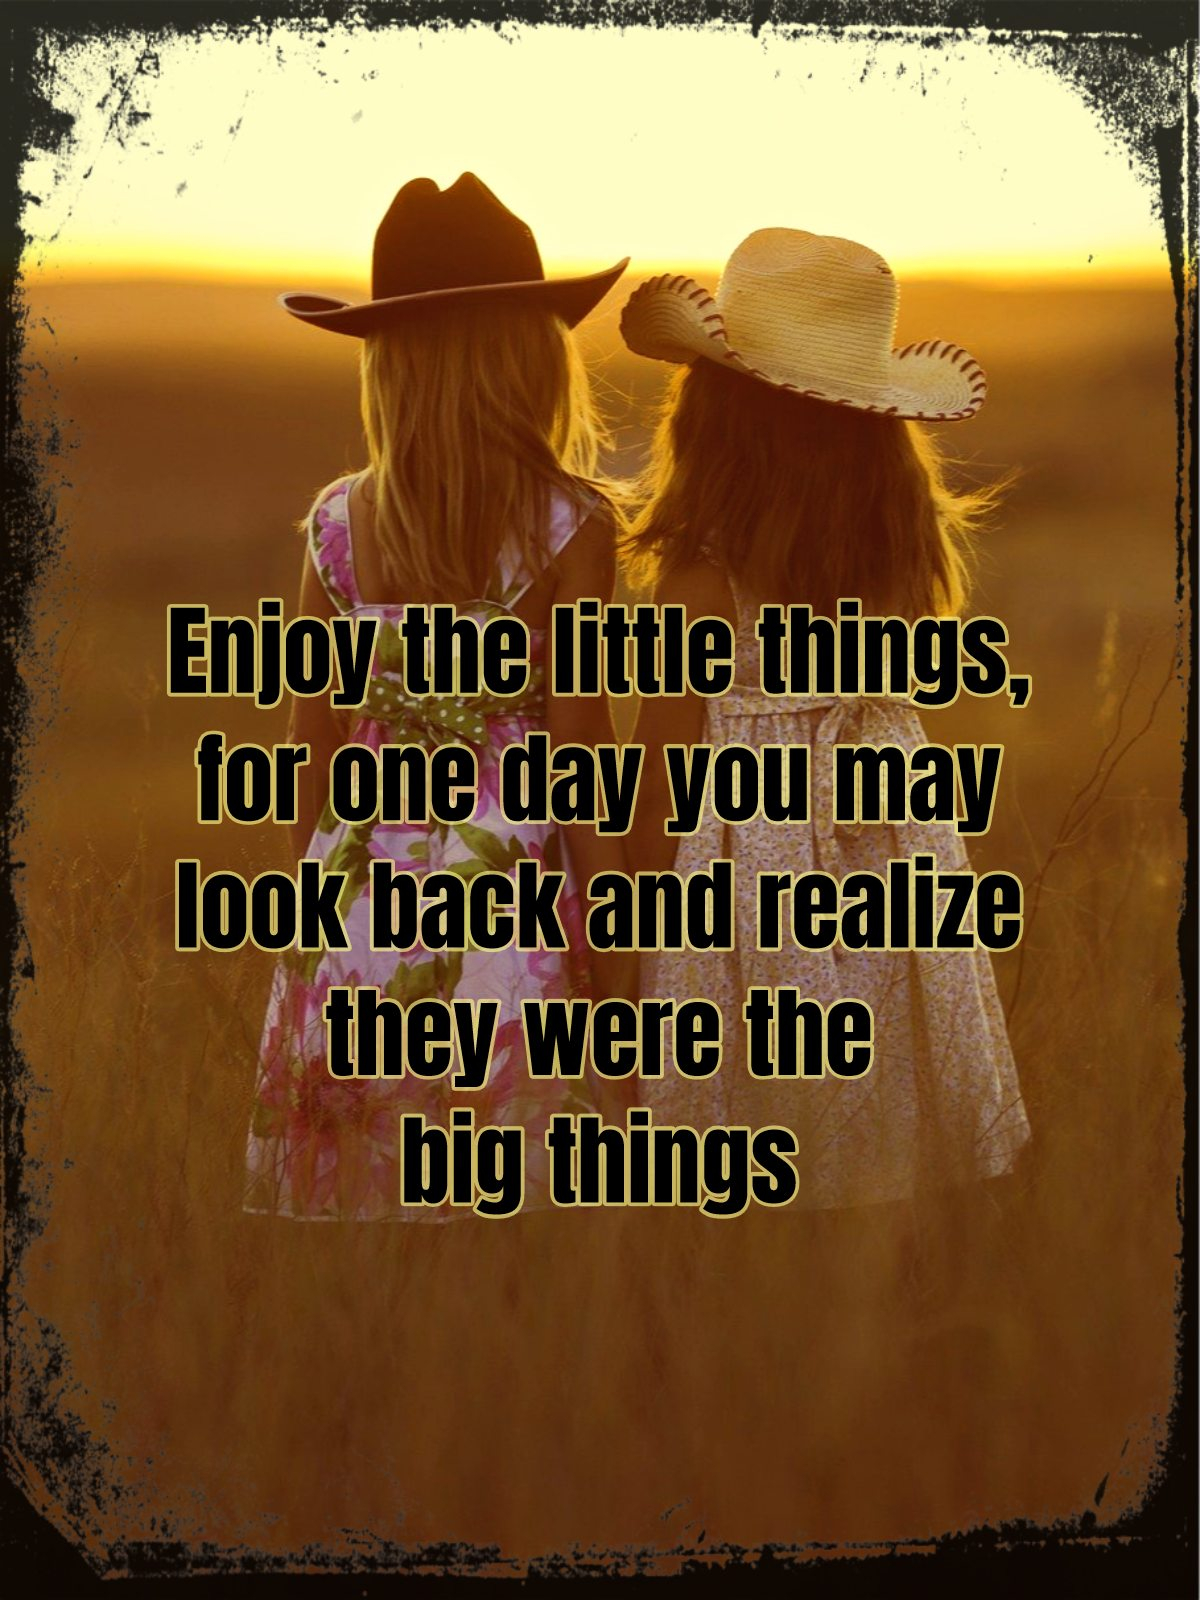 be kitschig blog Enjoy the little things, for one day you may look back and realize they were the big things.